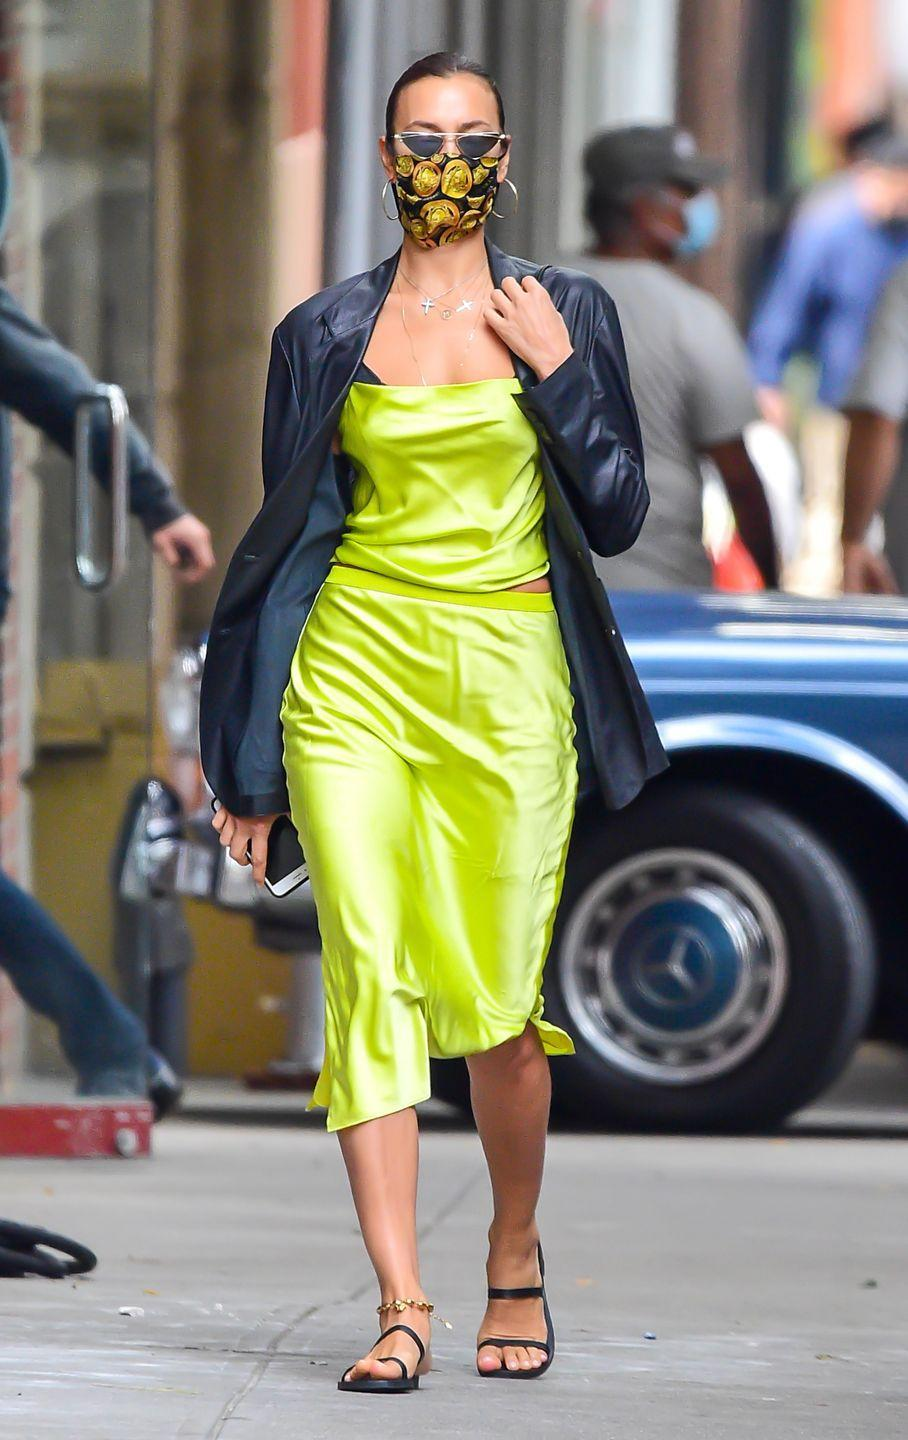 <p>The model was seen wearing a lime green slip dress and a black, leather coat while on the school run in New York City on October 19.</p><p>The 34-year-old model teamed her look with a pair of gold hoop earrings, black sandals and a gold and lime green-coloured black face mask.</p>